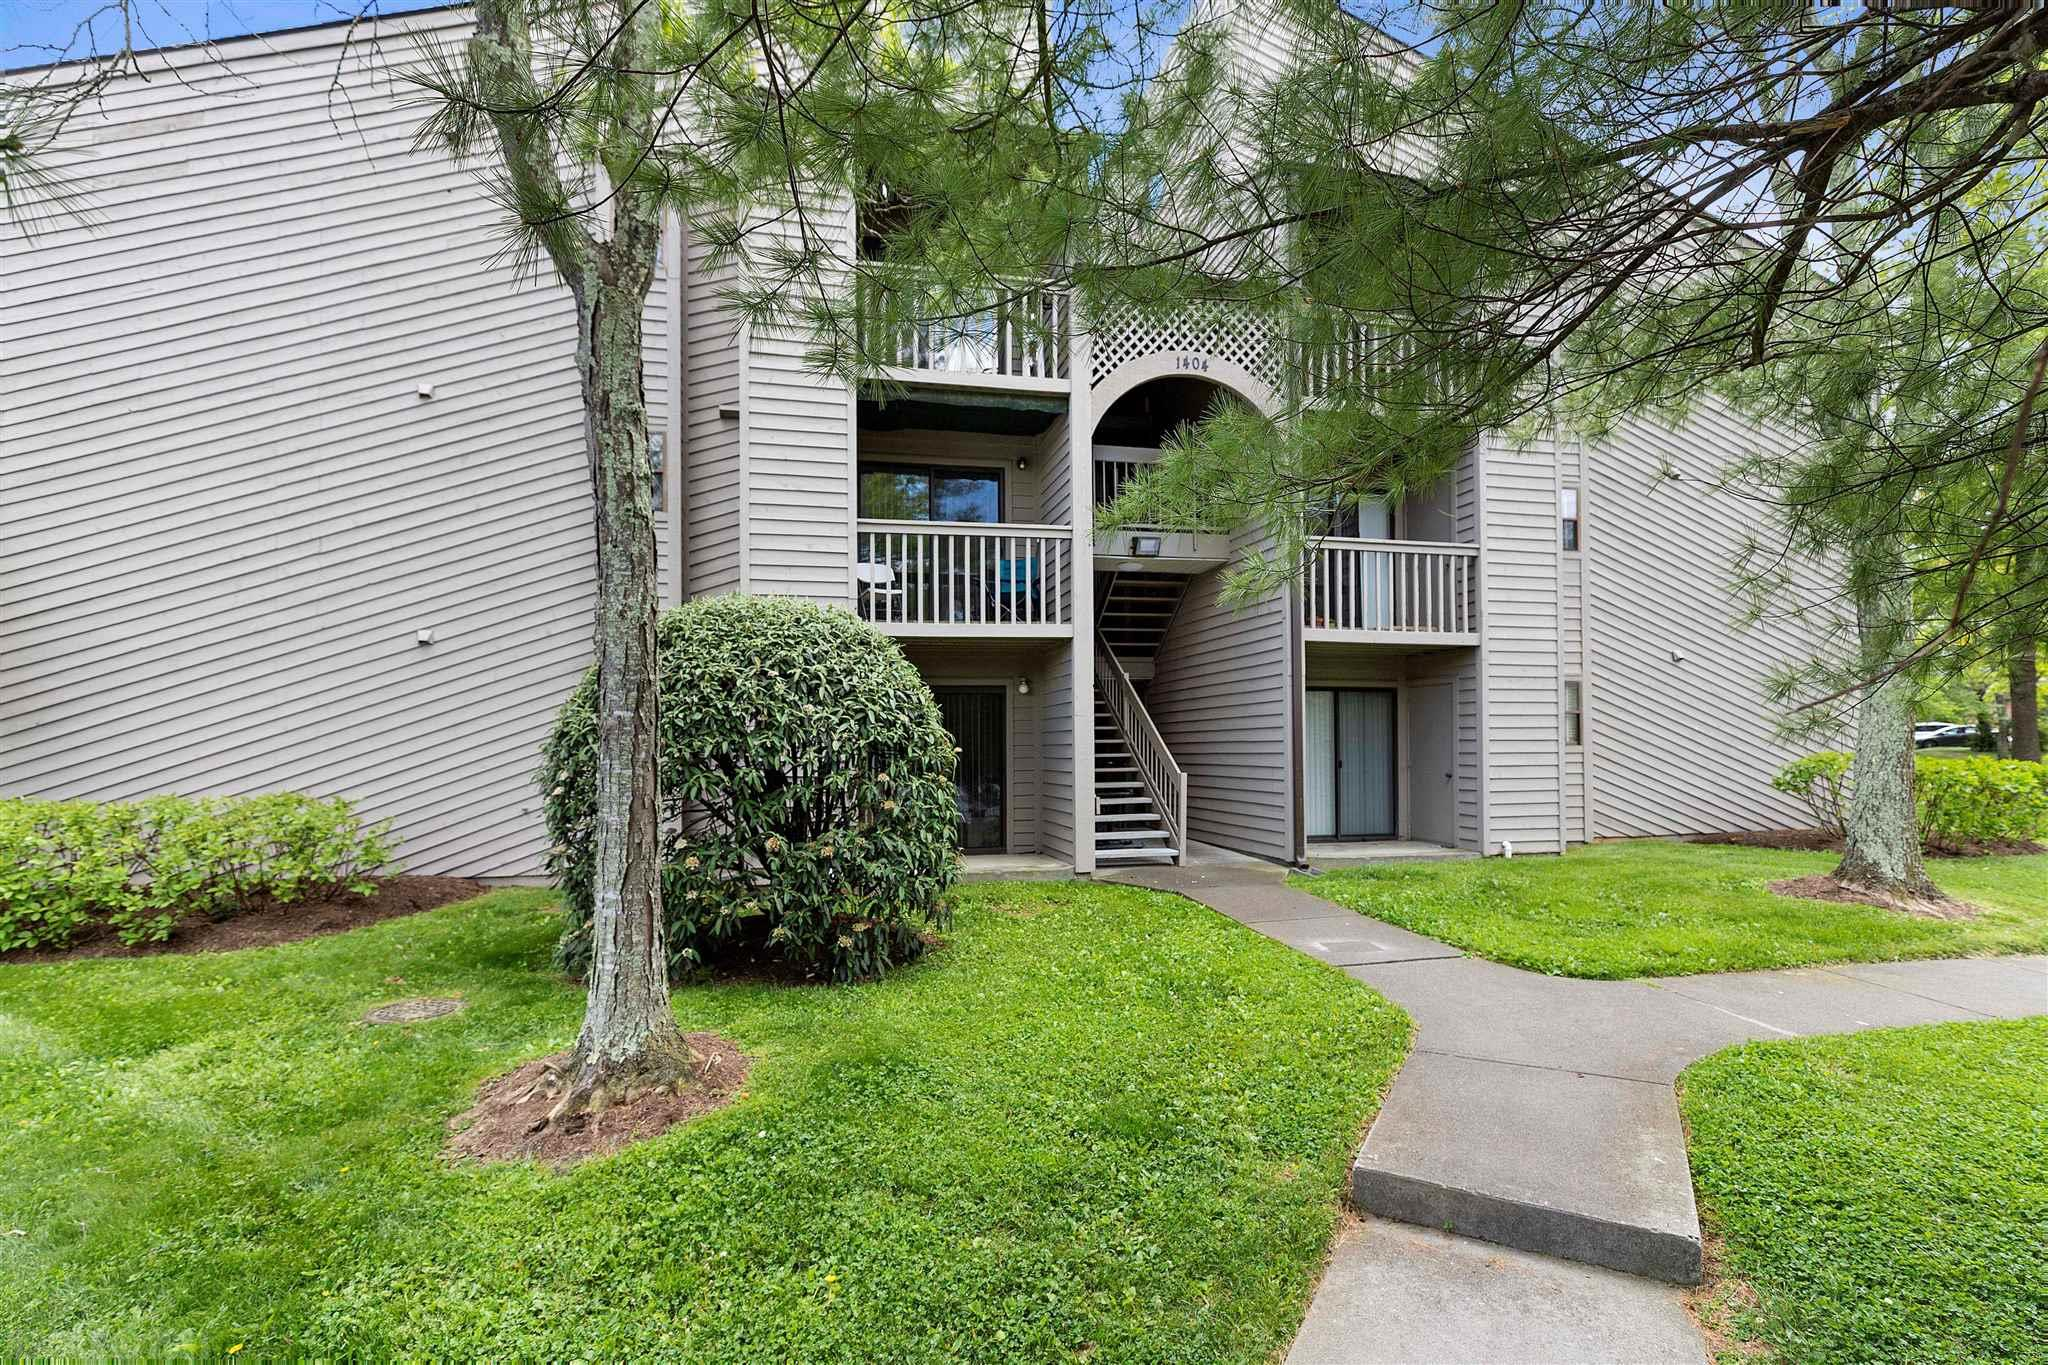 Adorable main floor studio condo with patio facing greenspace. Currently leased until 8/2022. Convenient  to VT Campus, public transportation, shopping, and restaurants. Great investment opportunity or student housing.